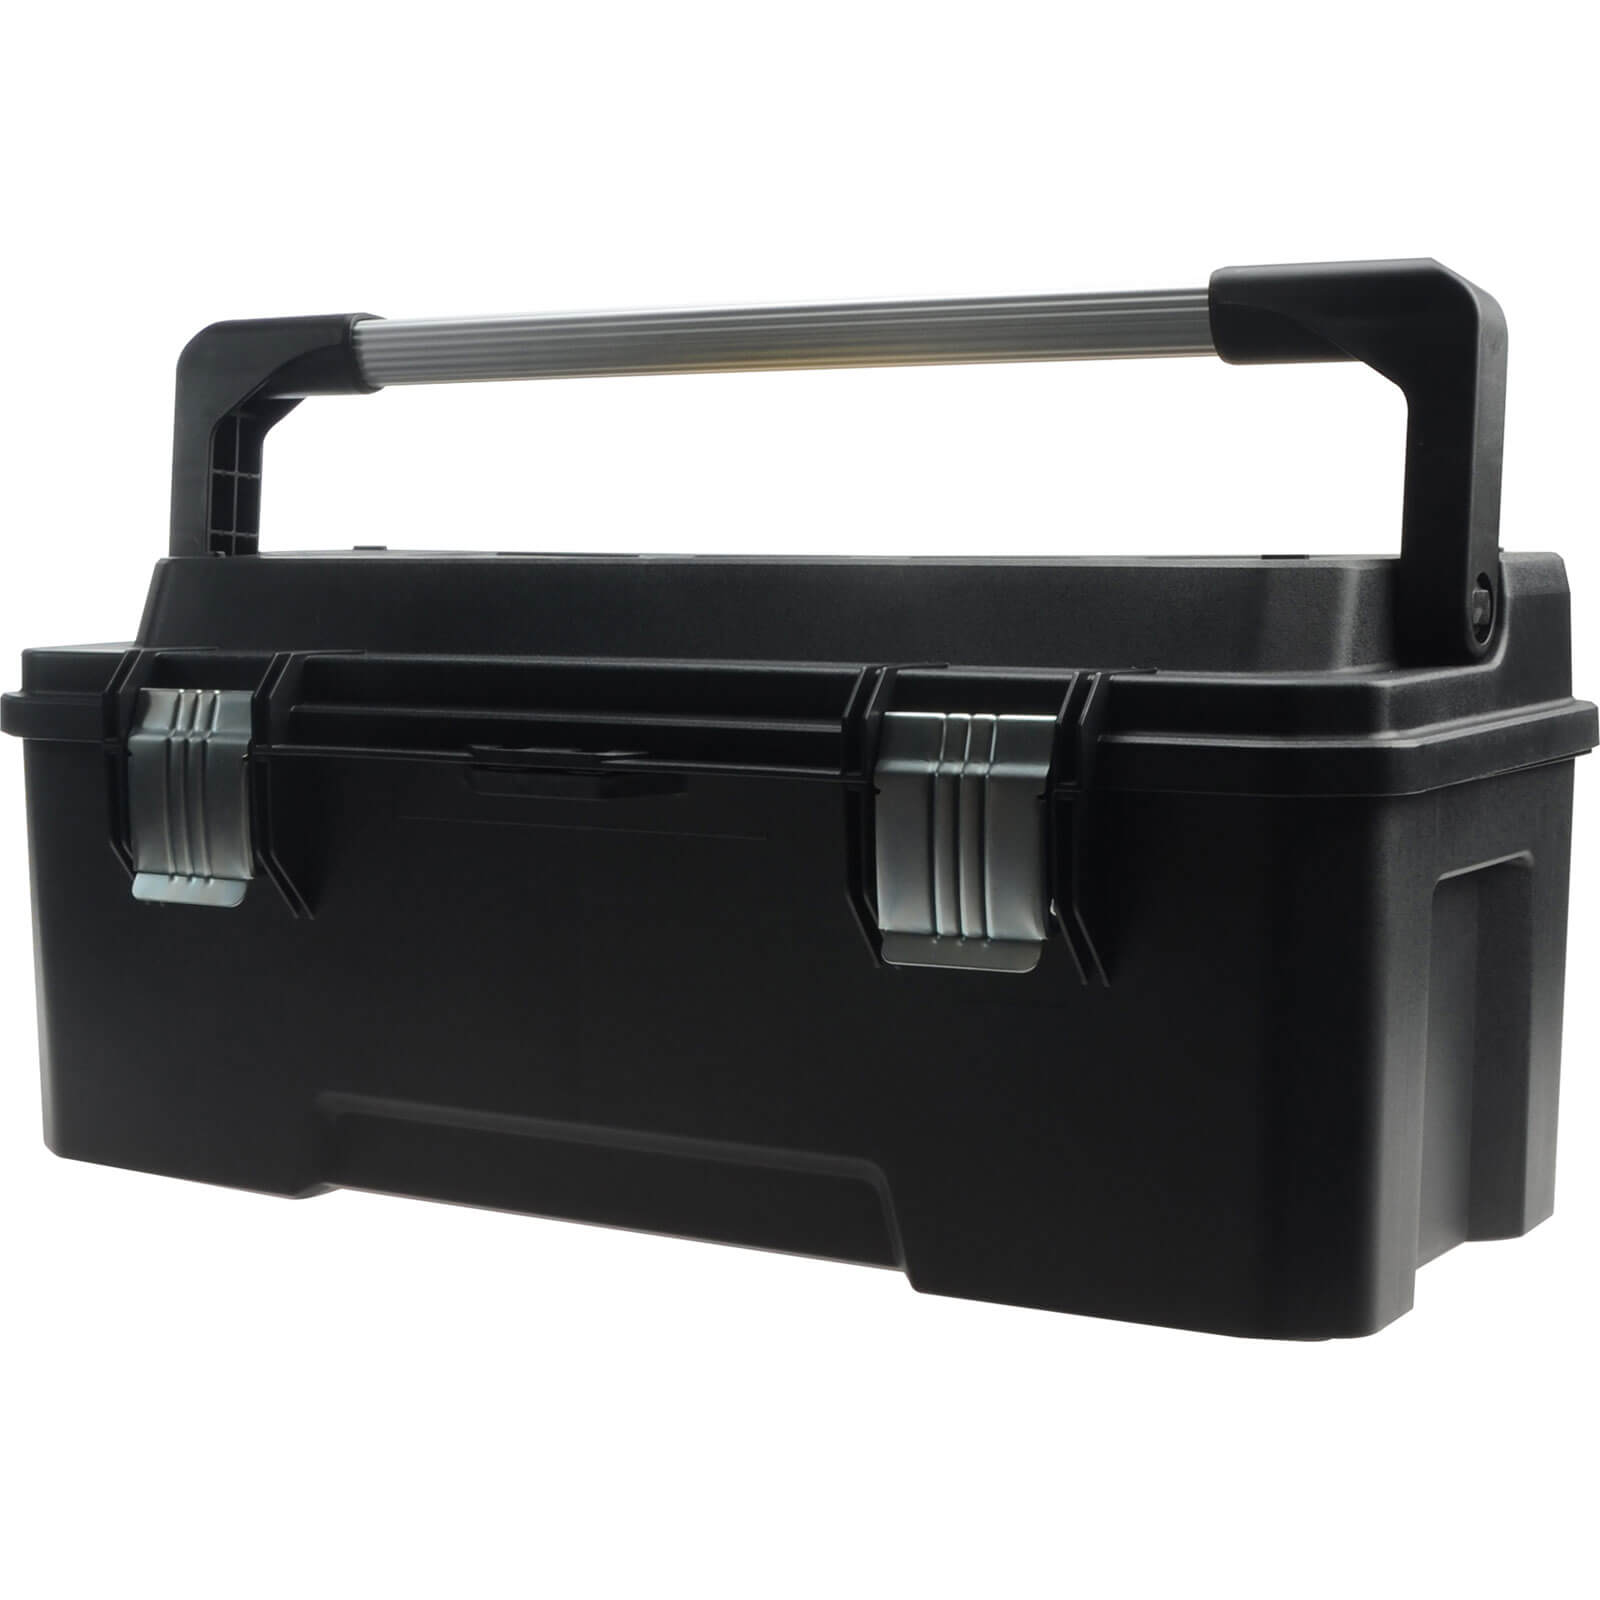 Image of Stanley Fatmax Cantilever Pro Toolbox 660mm